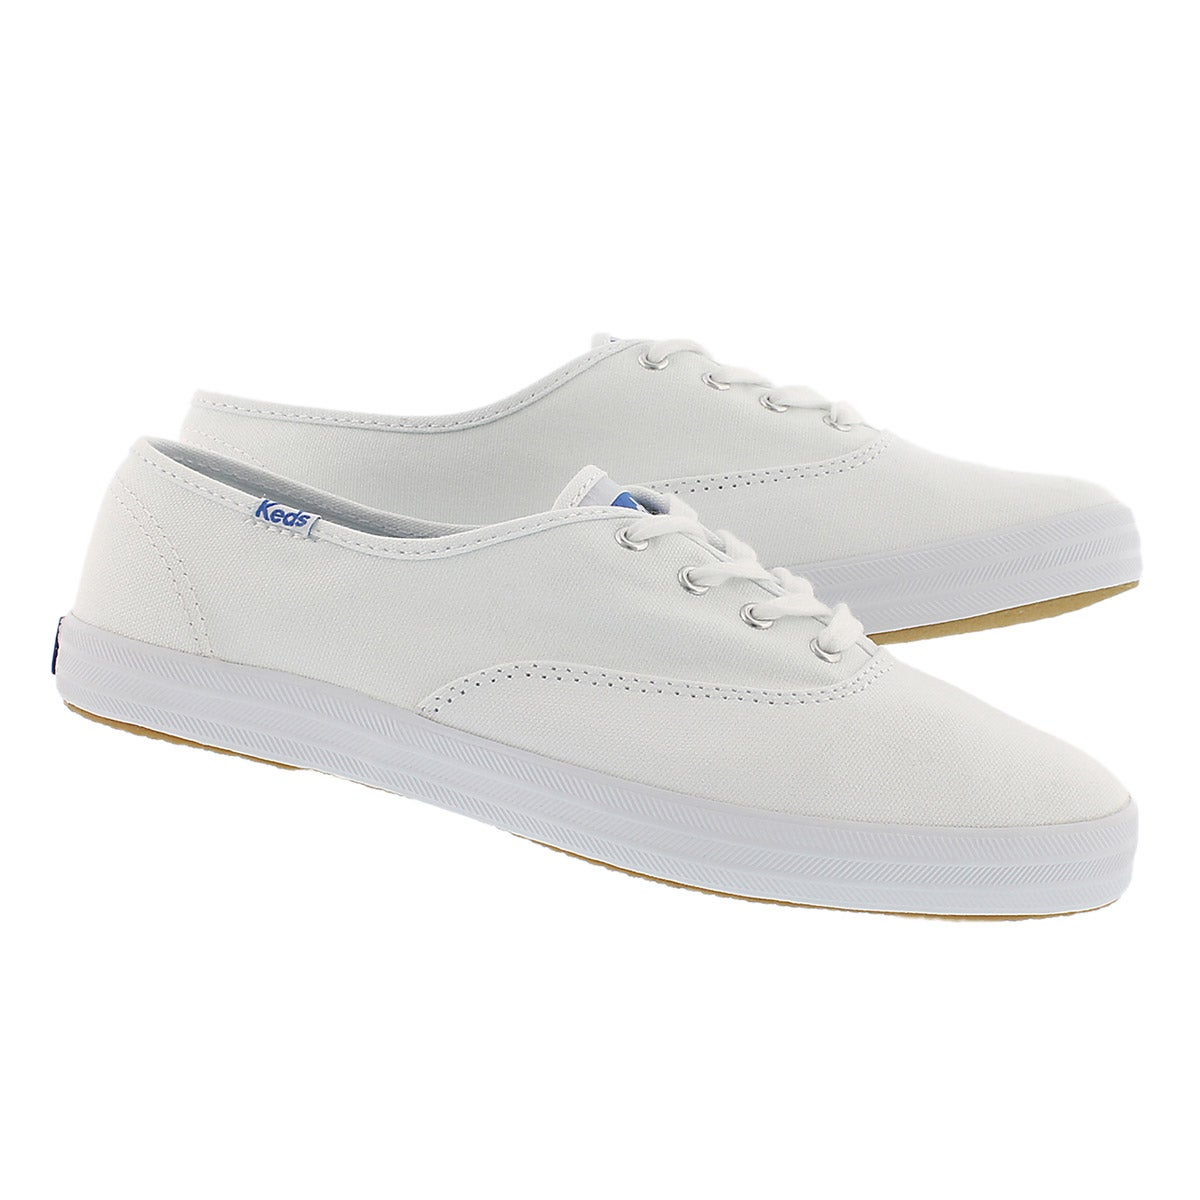 Lds Champion wht canvas sneaker- X Wide